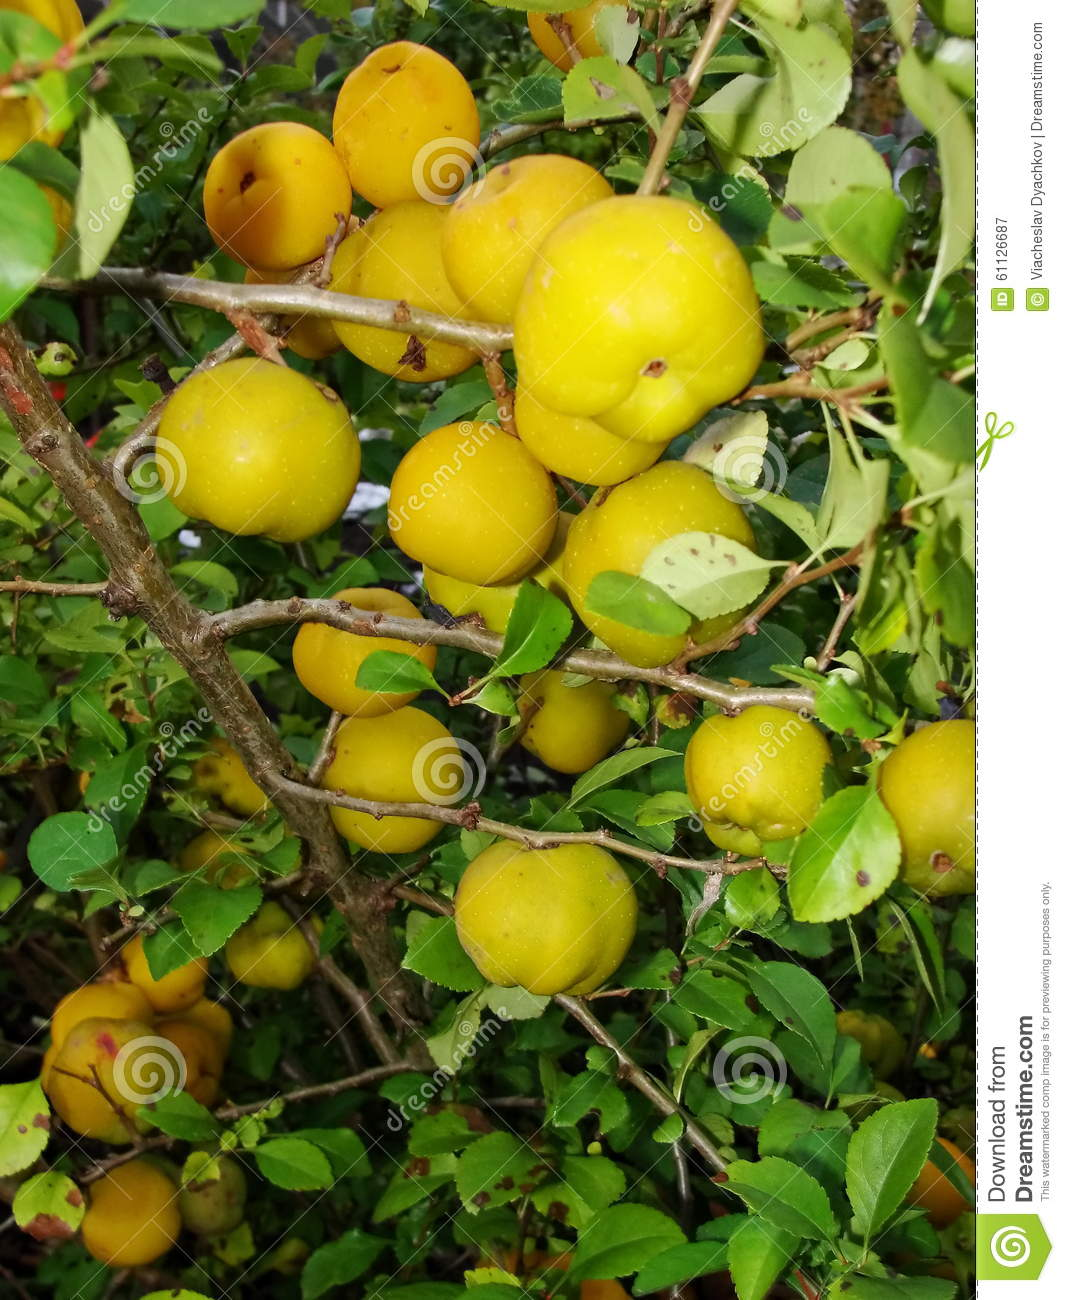 Yellow Fruits Of Japanese Quince Garland On Branches Of A